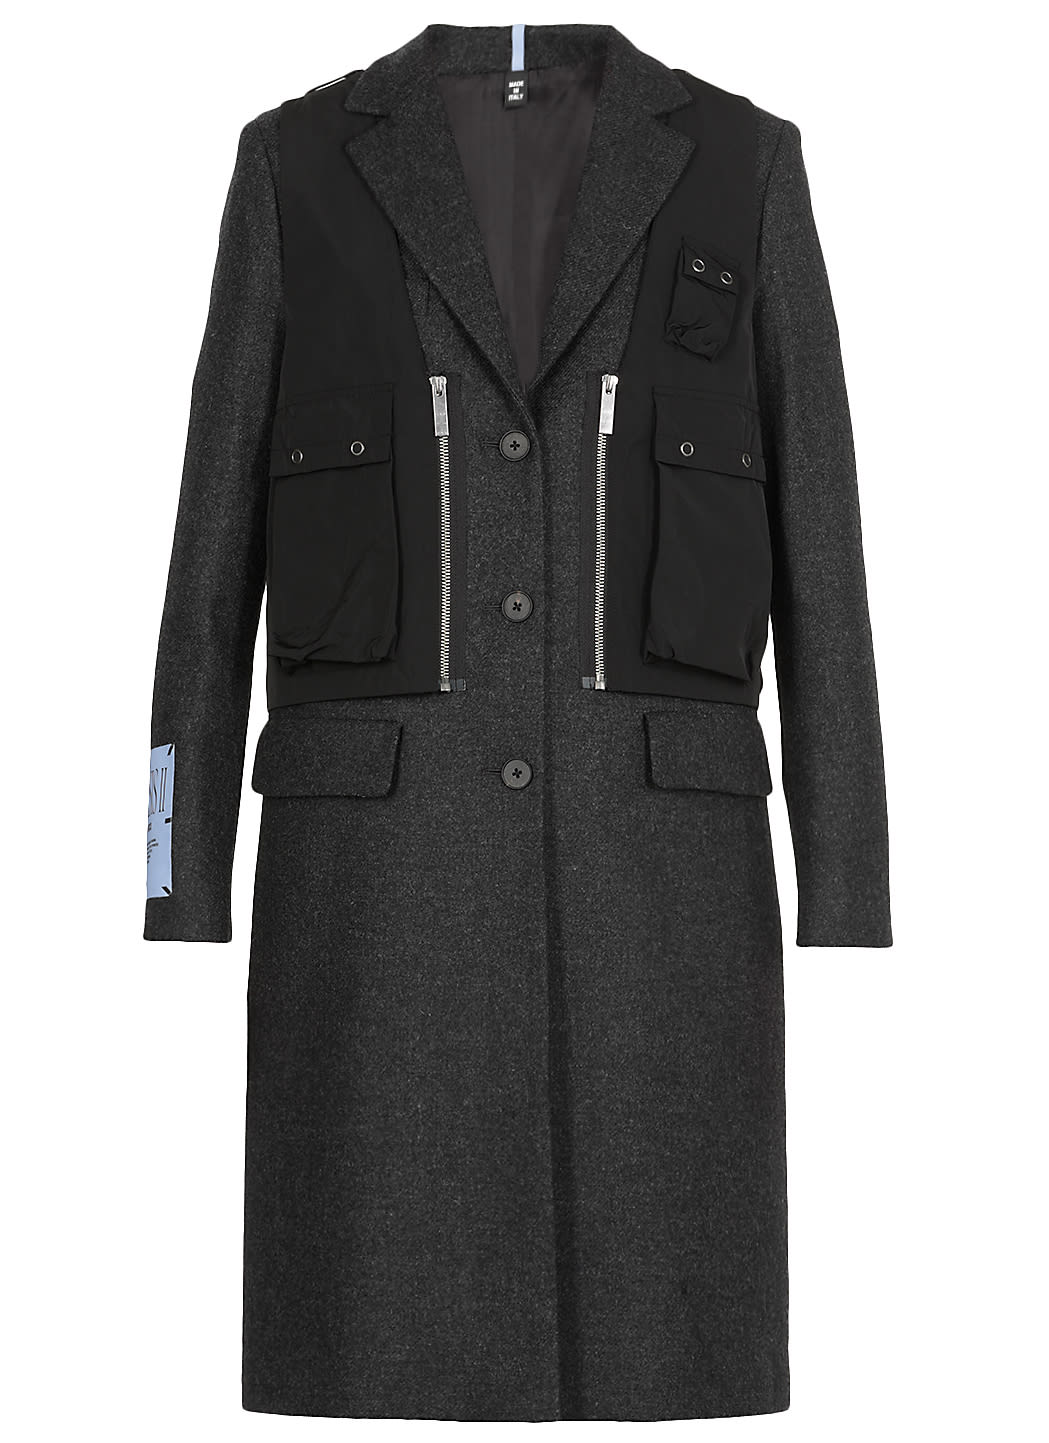 McQ Alexander McQueen Mono Breasted Wool Coat